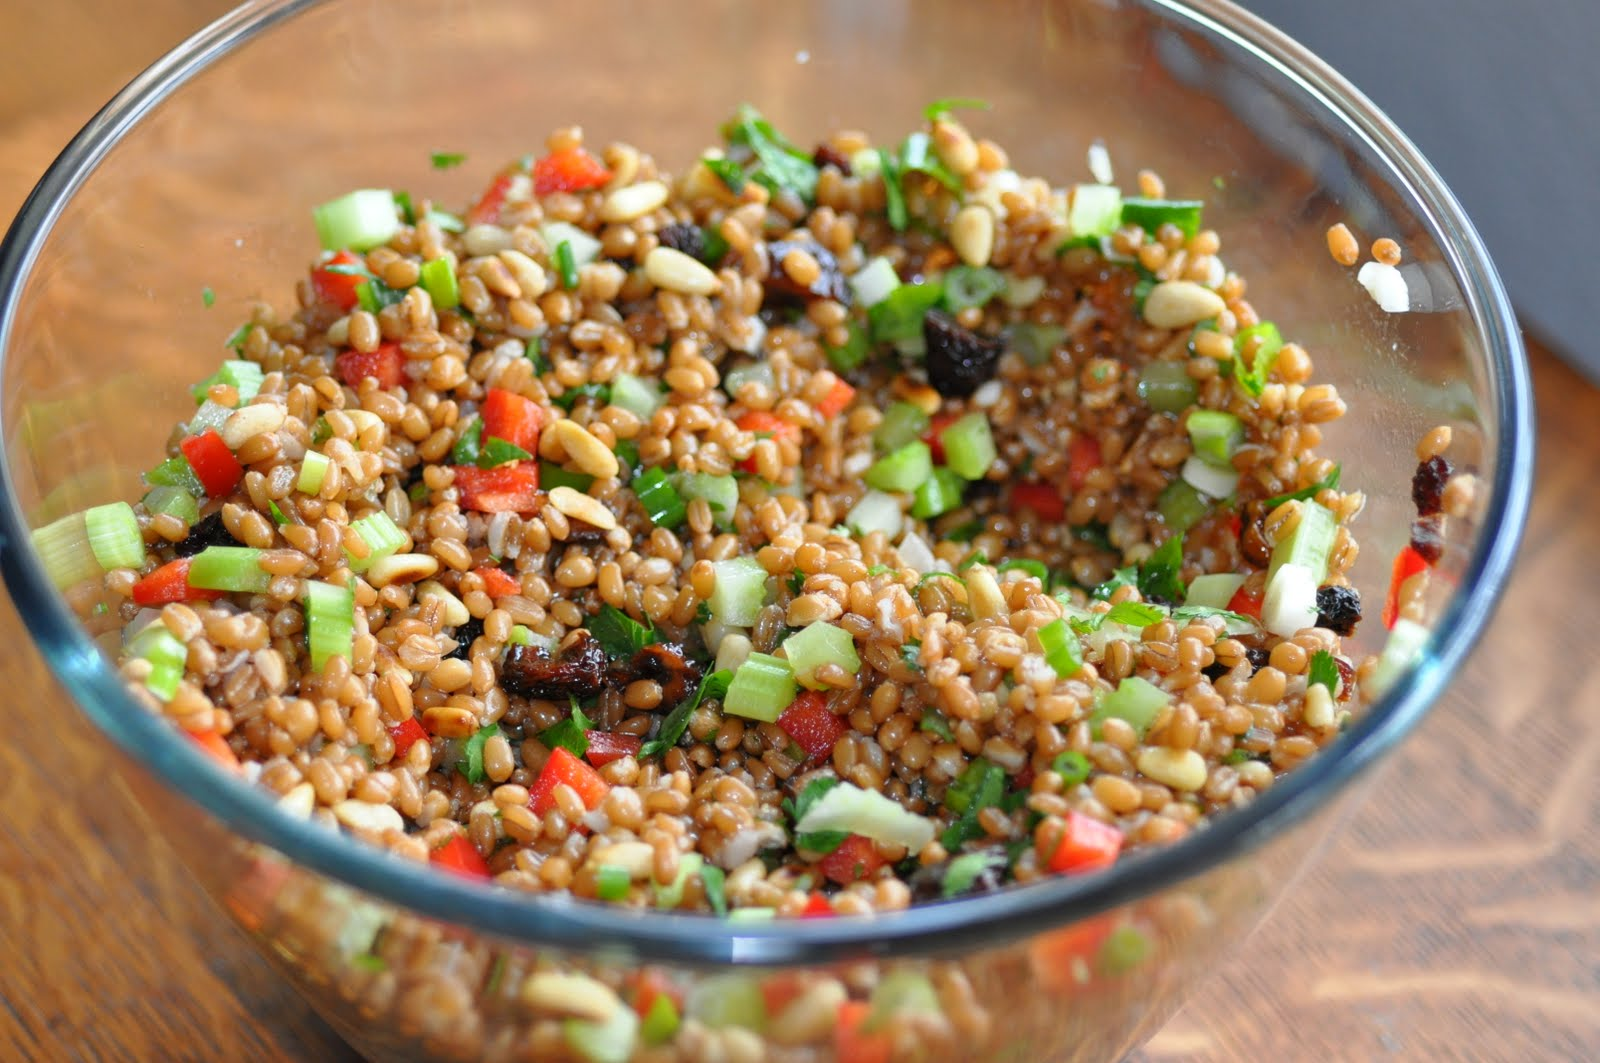 ... wheat berry spread vanilla berry whole wheat couscous breakfast pilaf